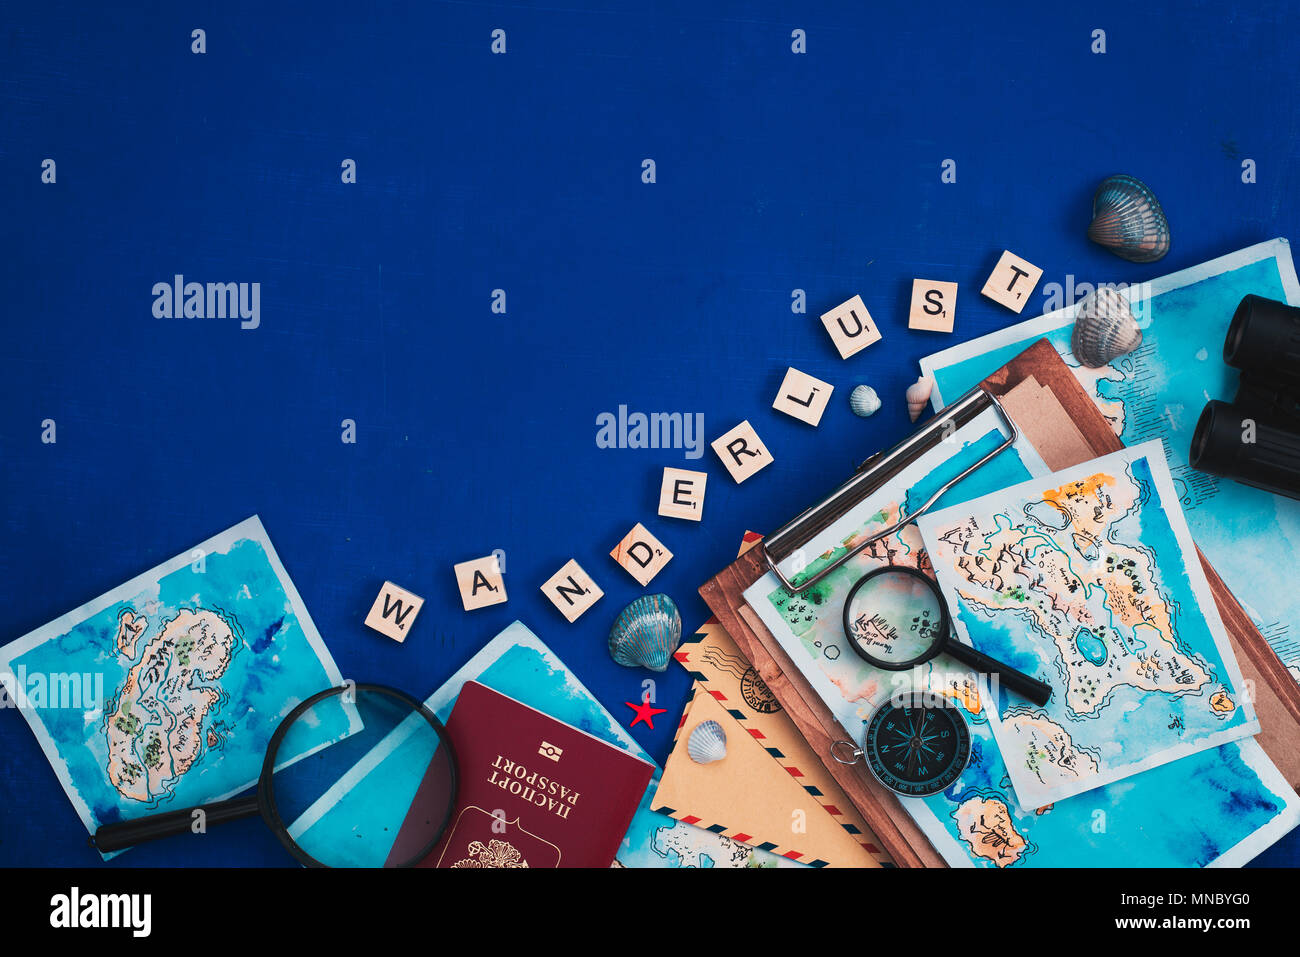 Header with travel and exploration concept. Watercolor maps, passport, compass, binoculars, envelopes, magnifying glass, and Wanderlust wooden letters - Stock Image